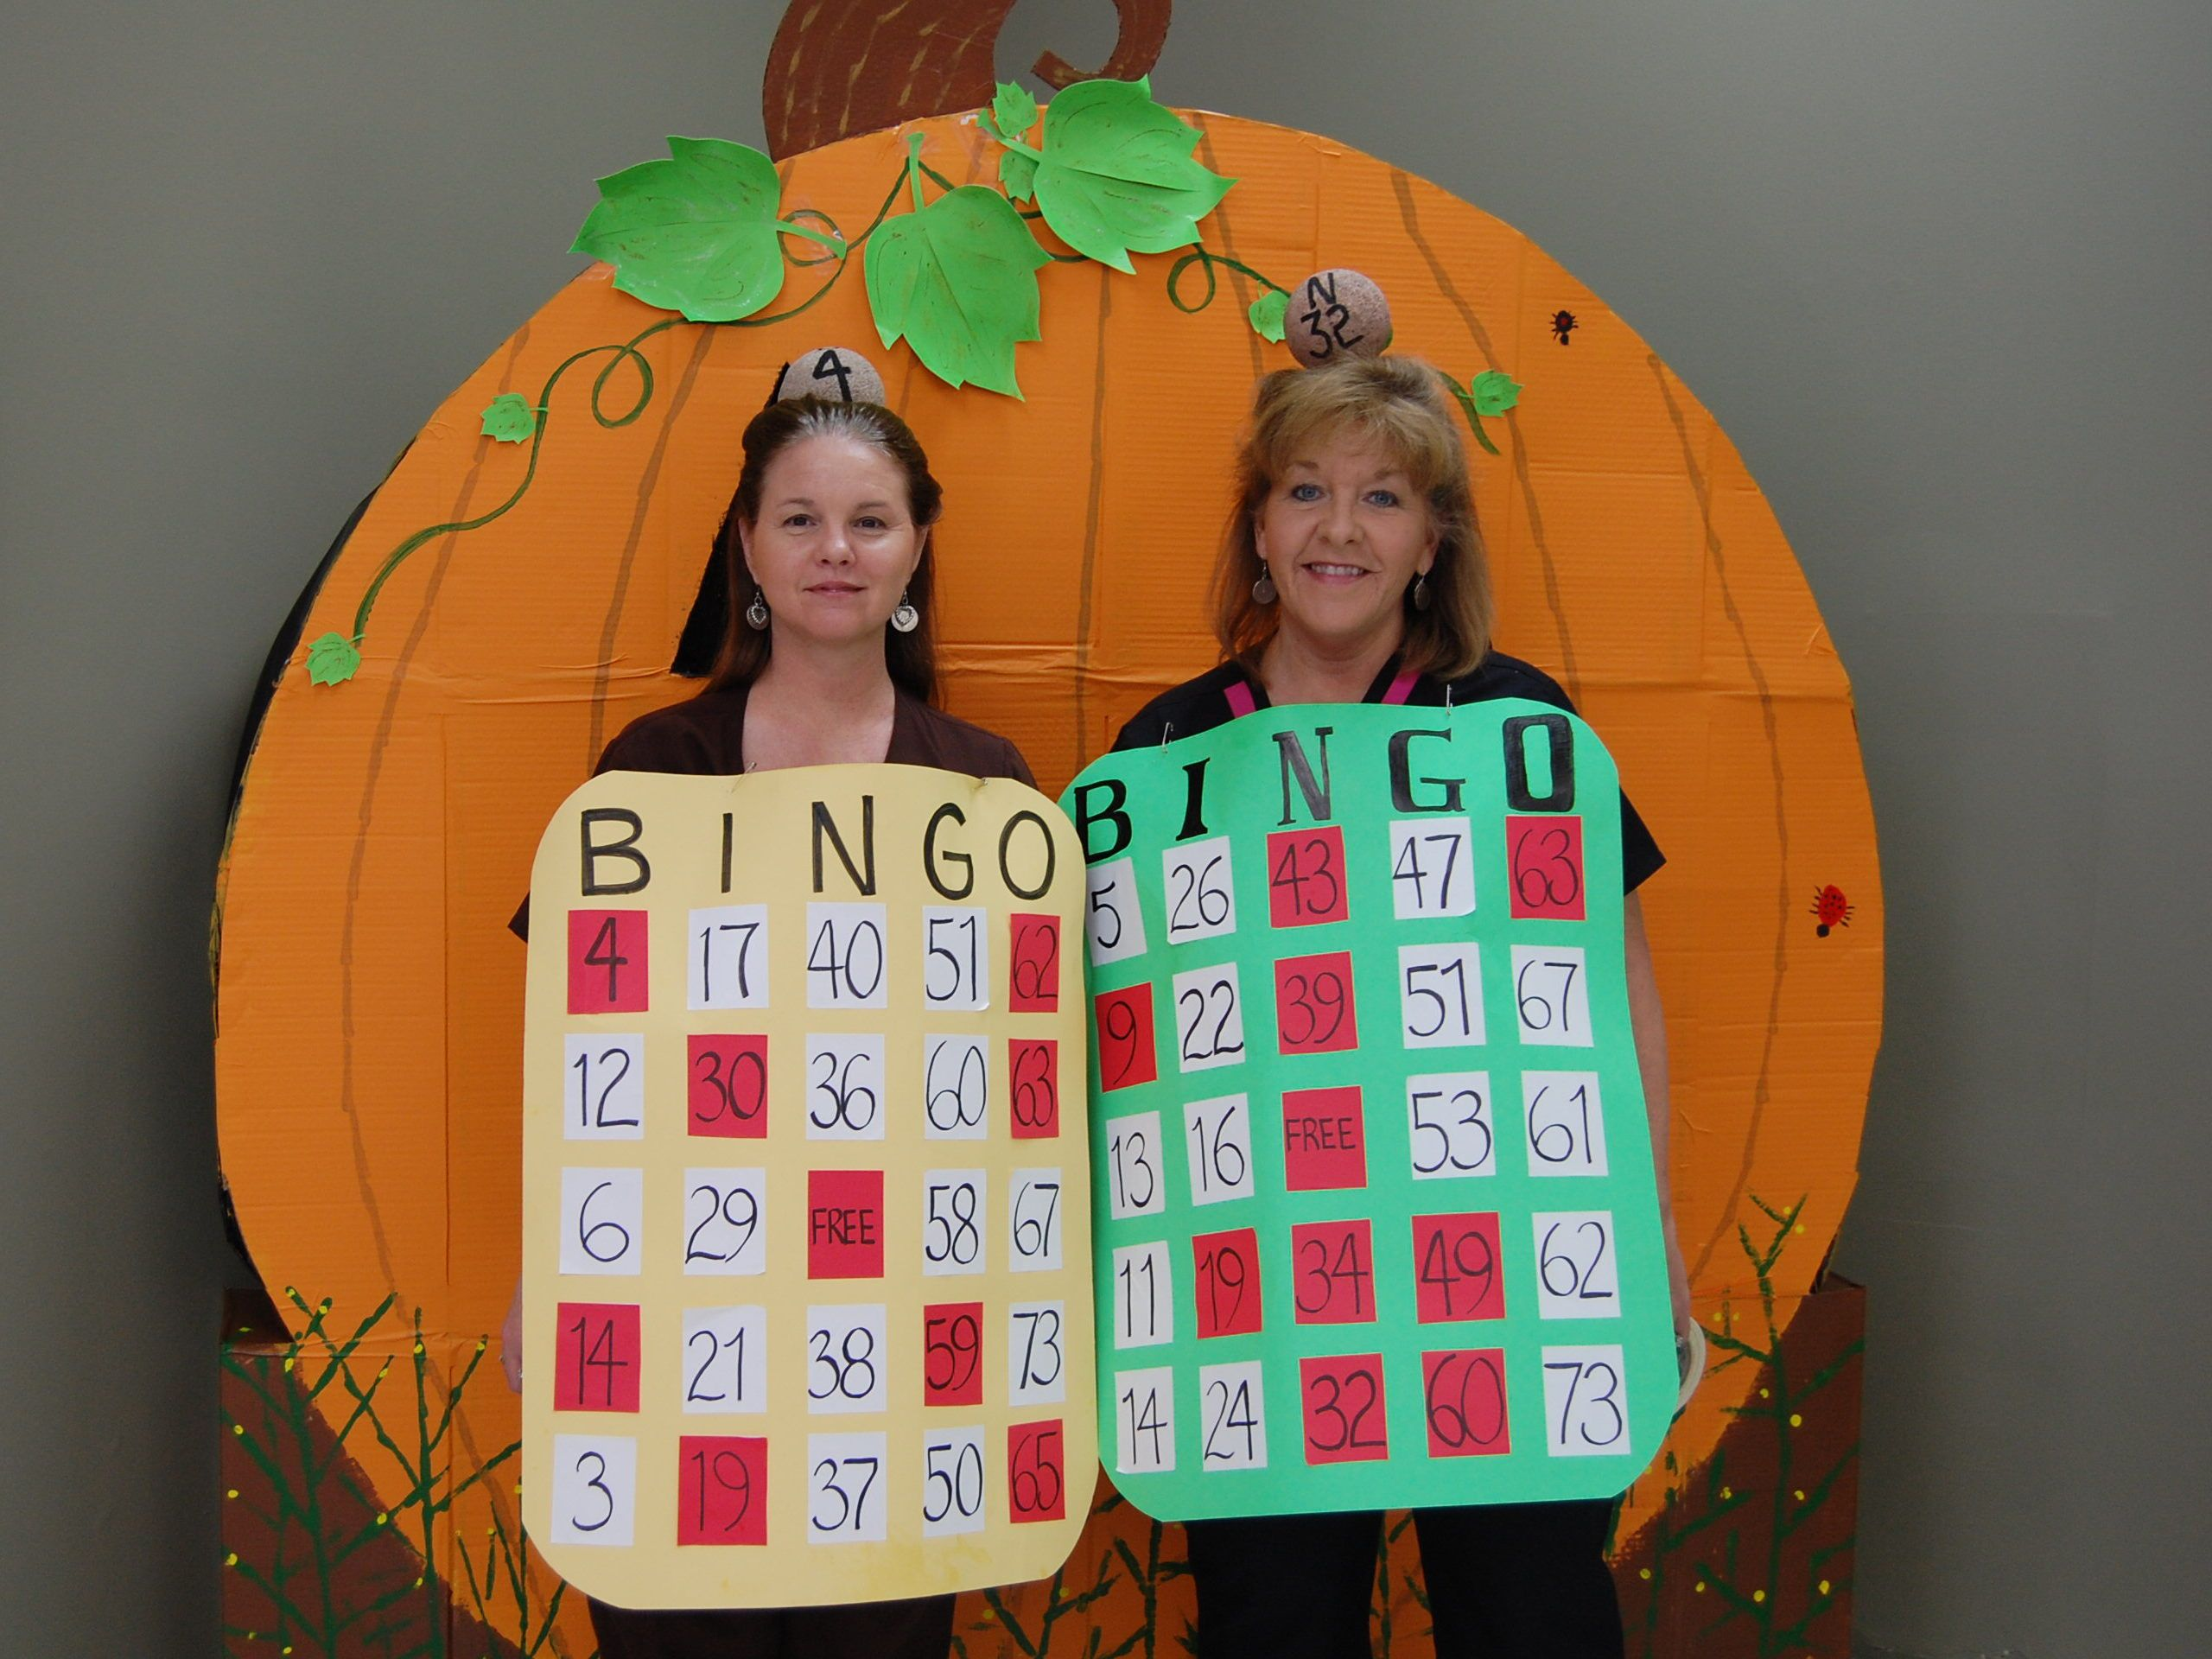 halloween costume i madeso appropriate for working as activity director at nursing homeeven have a bingo ball atop our headsand i made quarter - Halloween Home Costumes